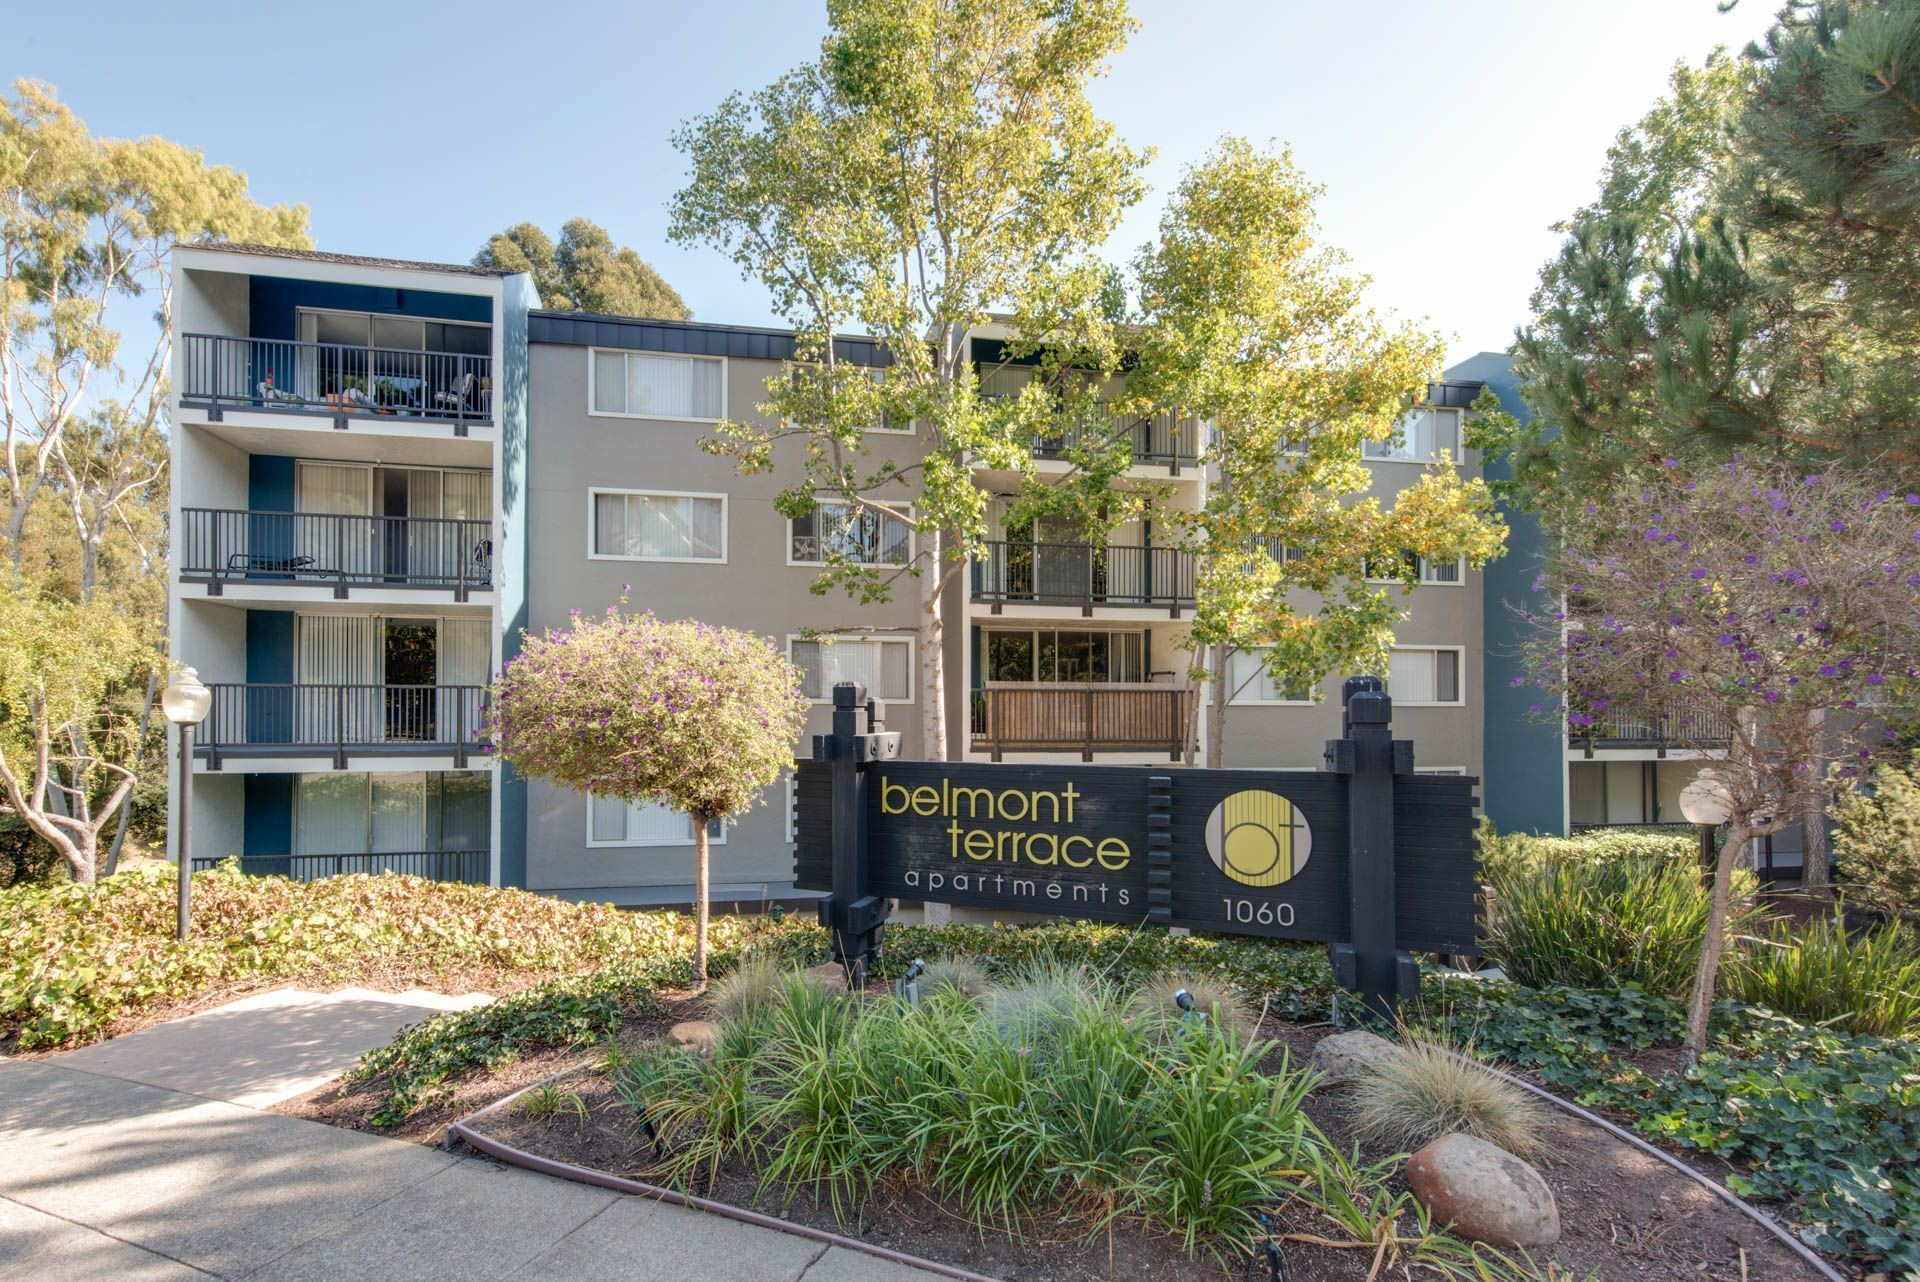 Belmont Terrace Apartments